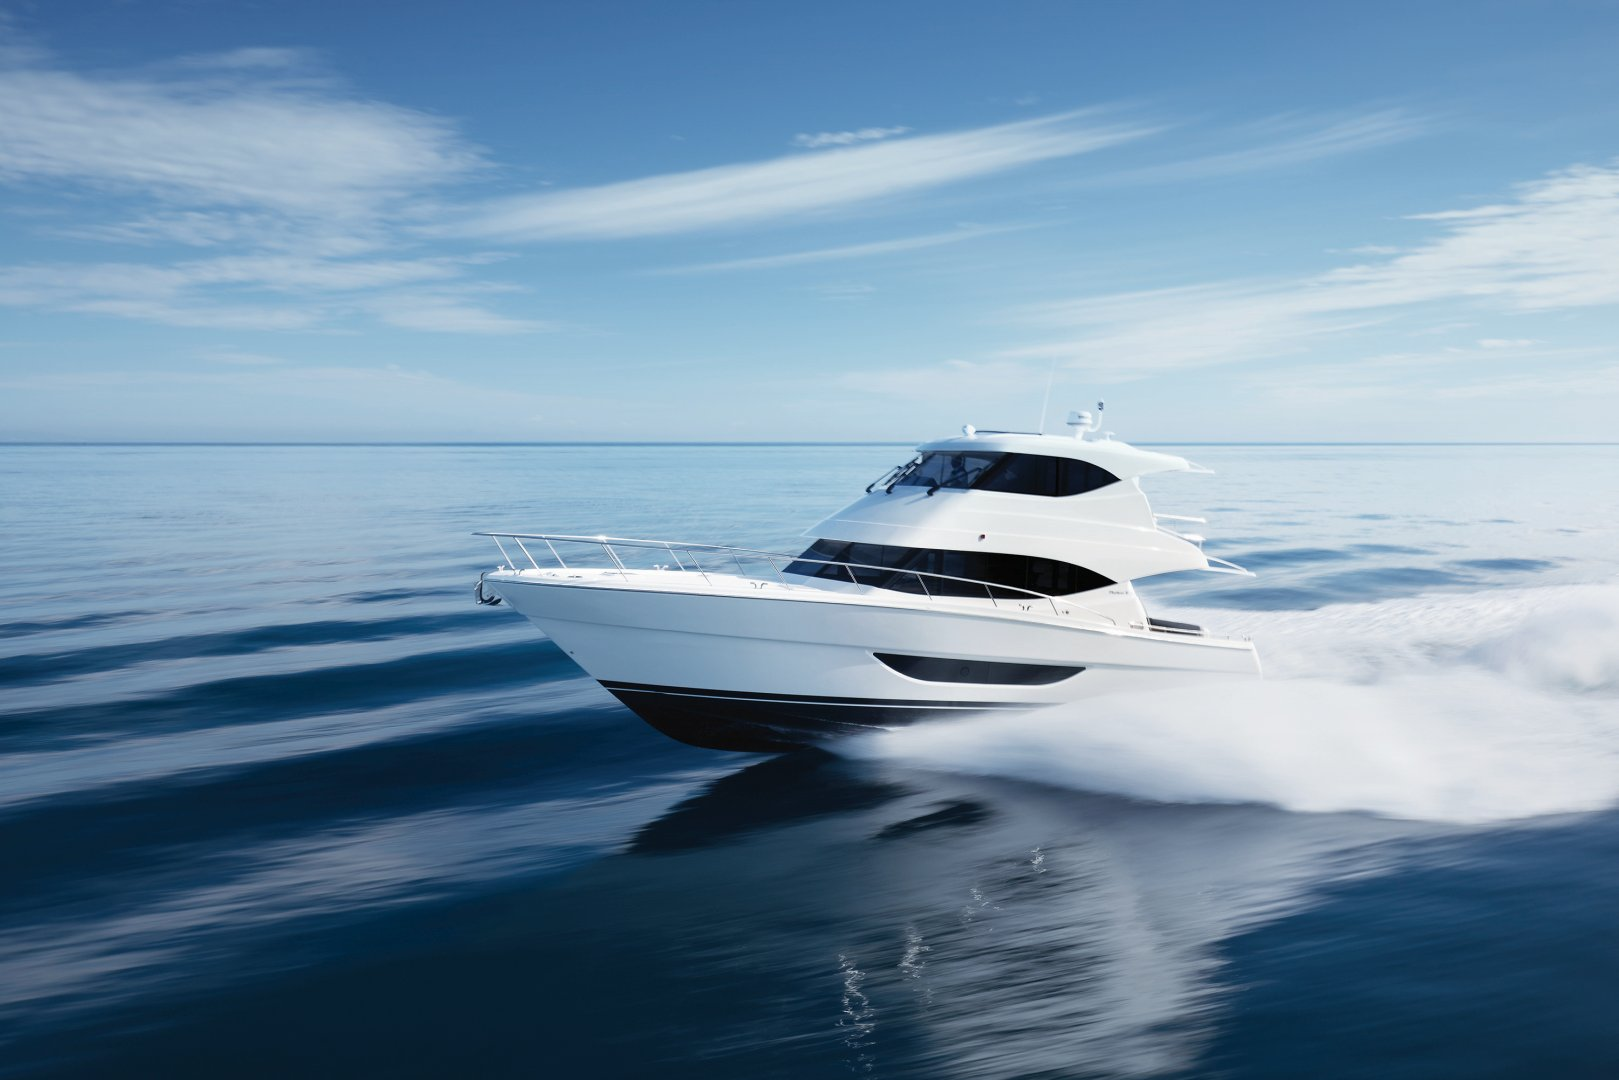 360 VR Virtual Tours of the Maritimo M51 – VRCLOUD